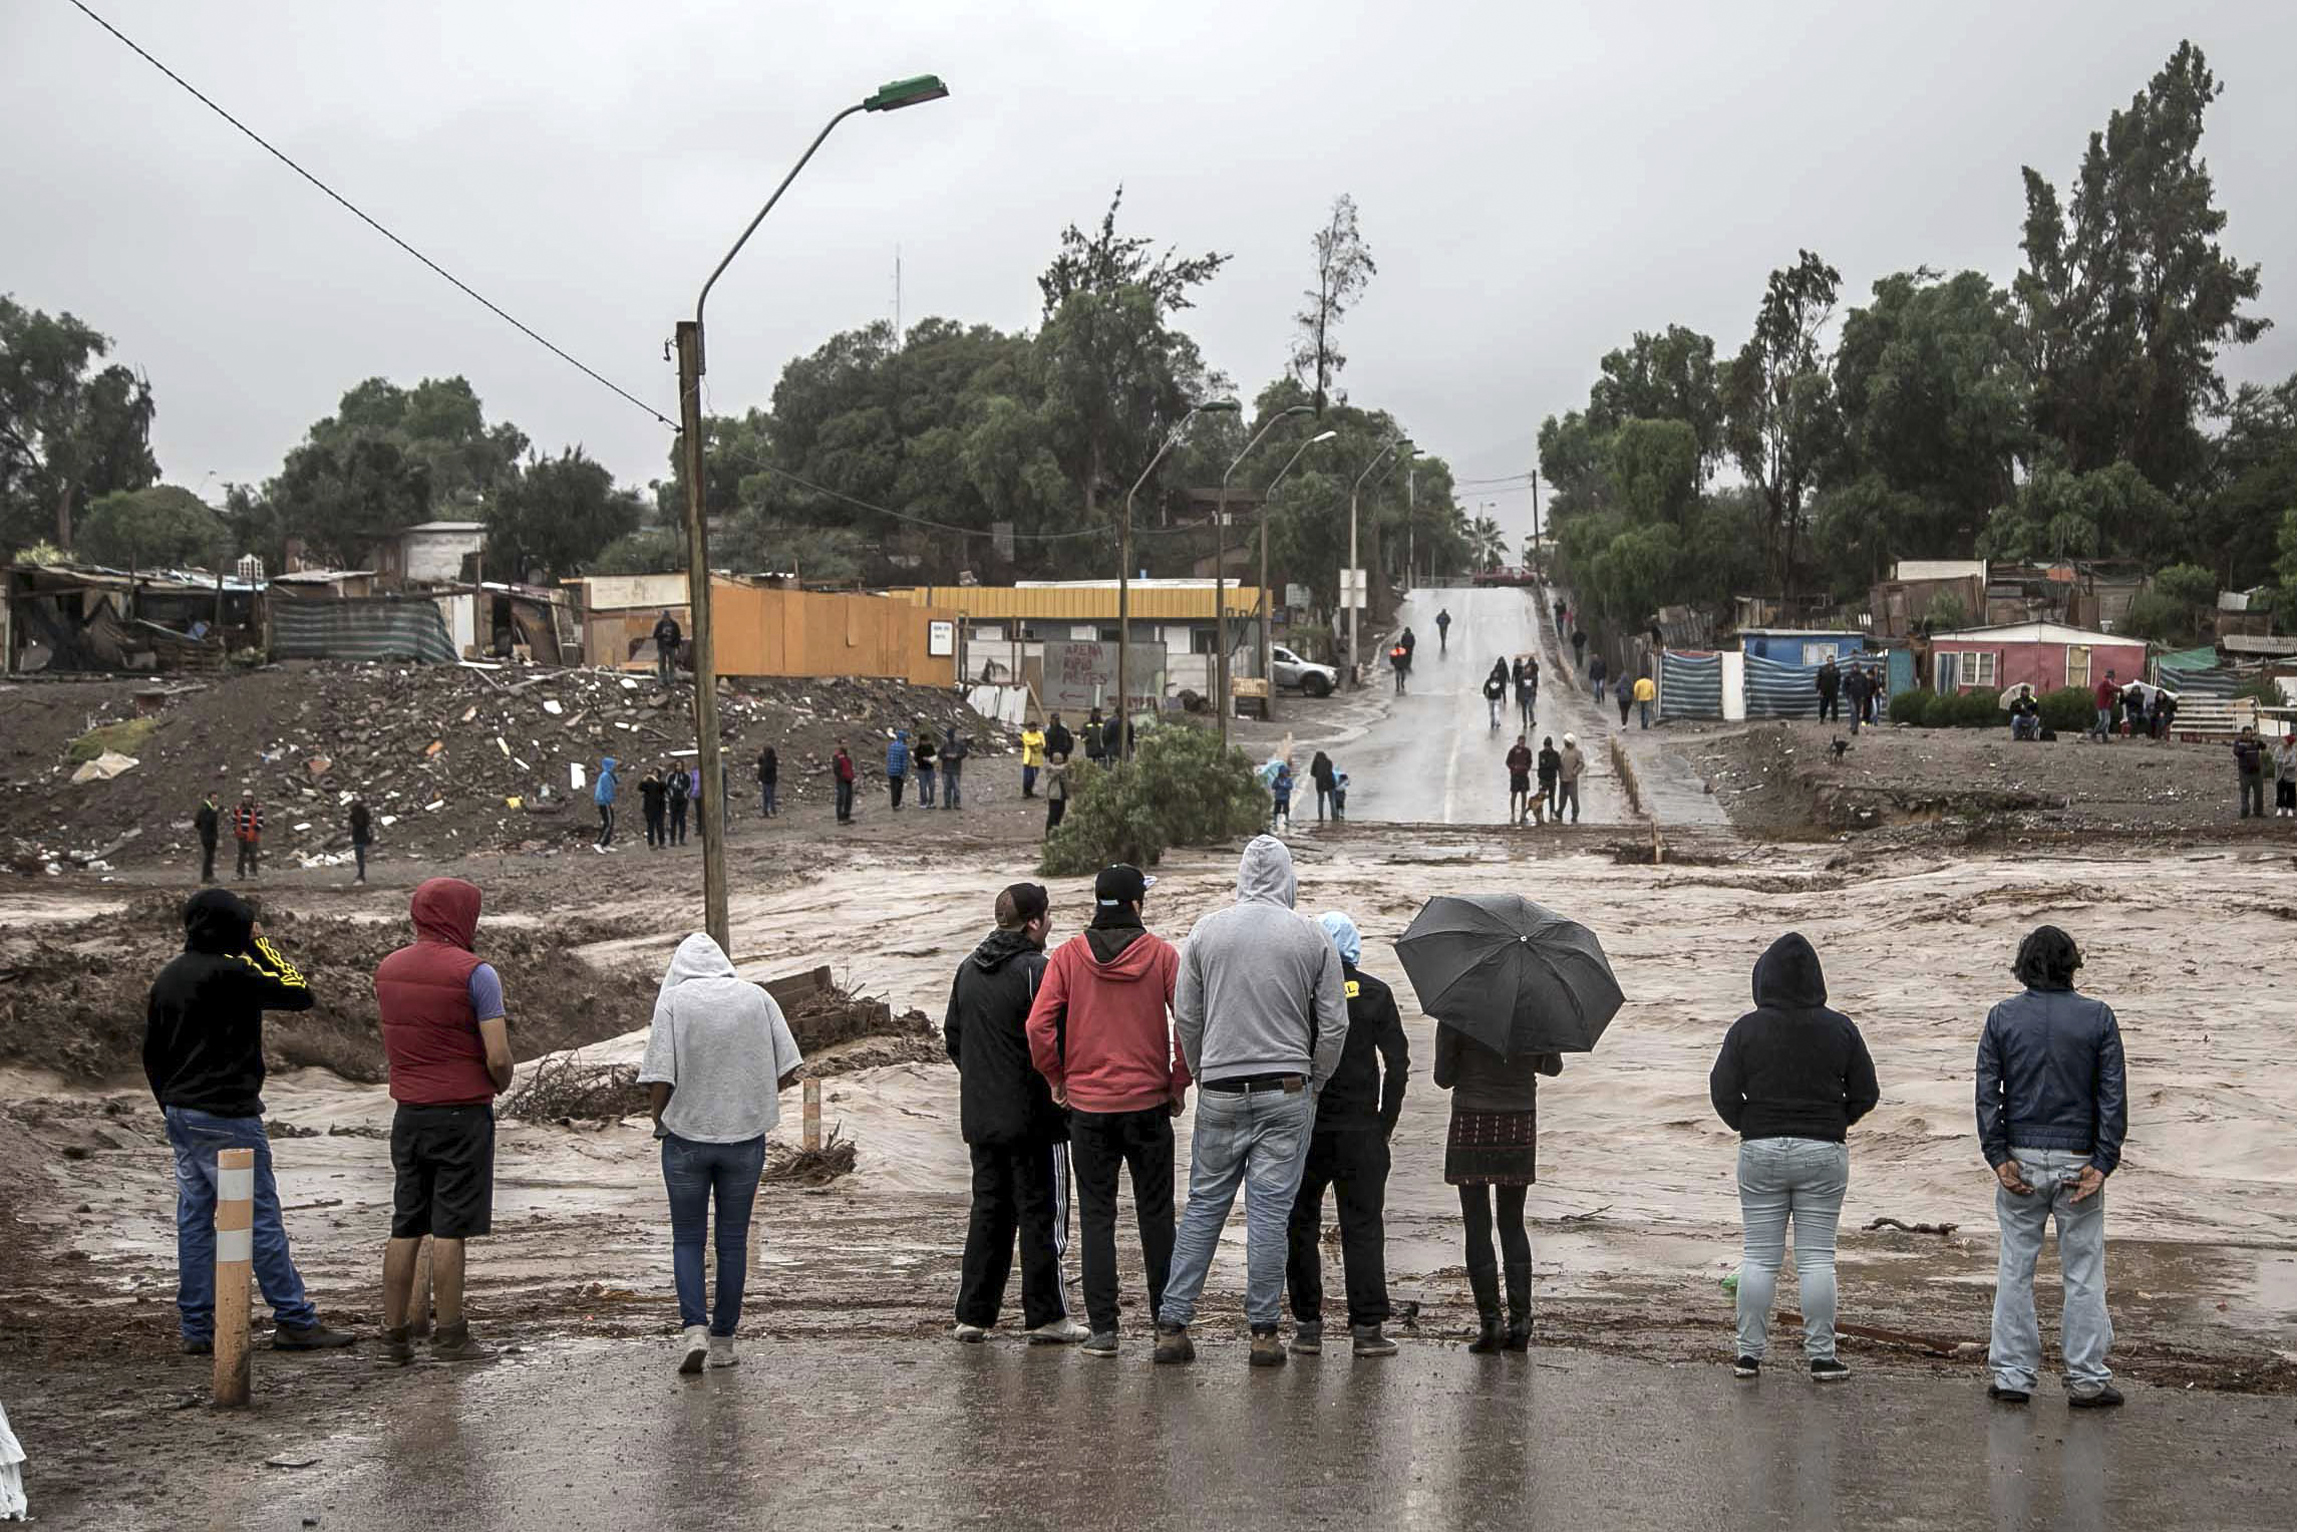 Residents watch the rising flood waters of the Copiapo River, in Copiapo, Chile, March 25, 2015